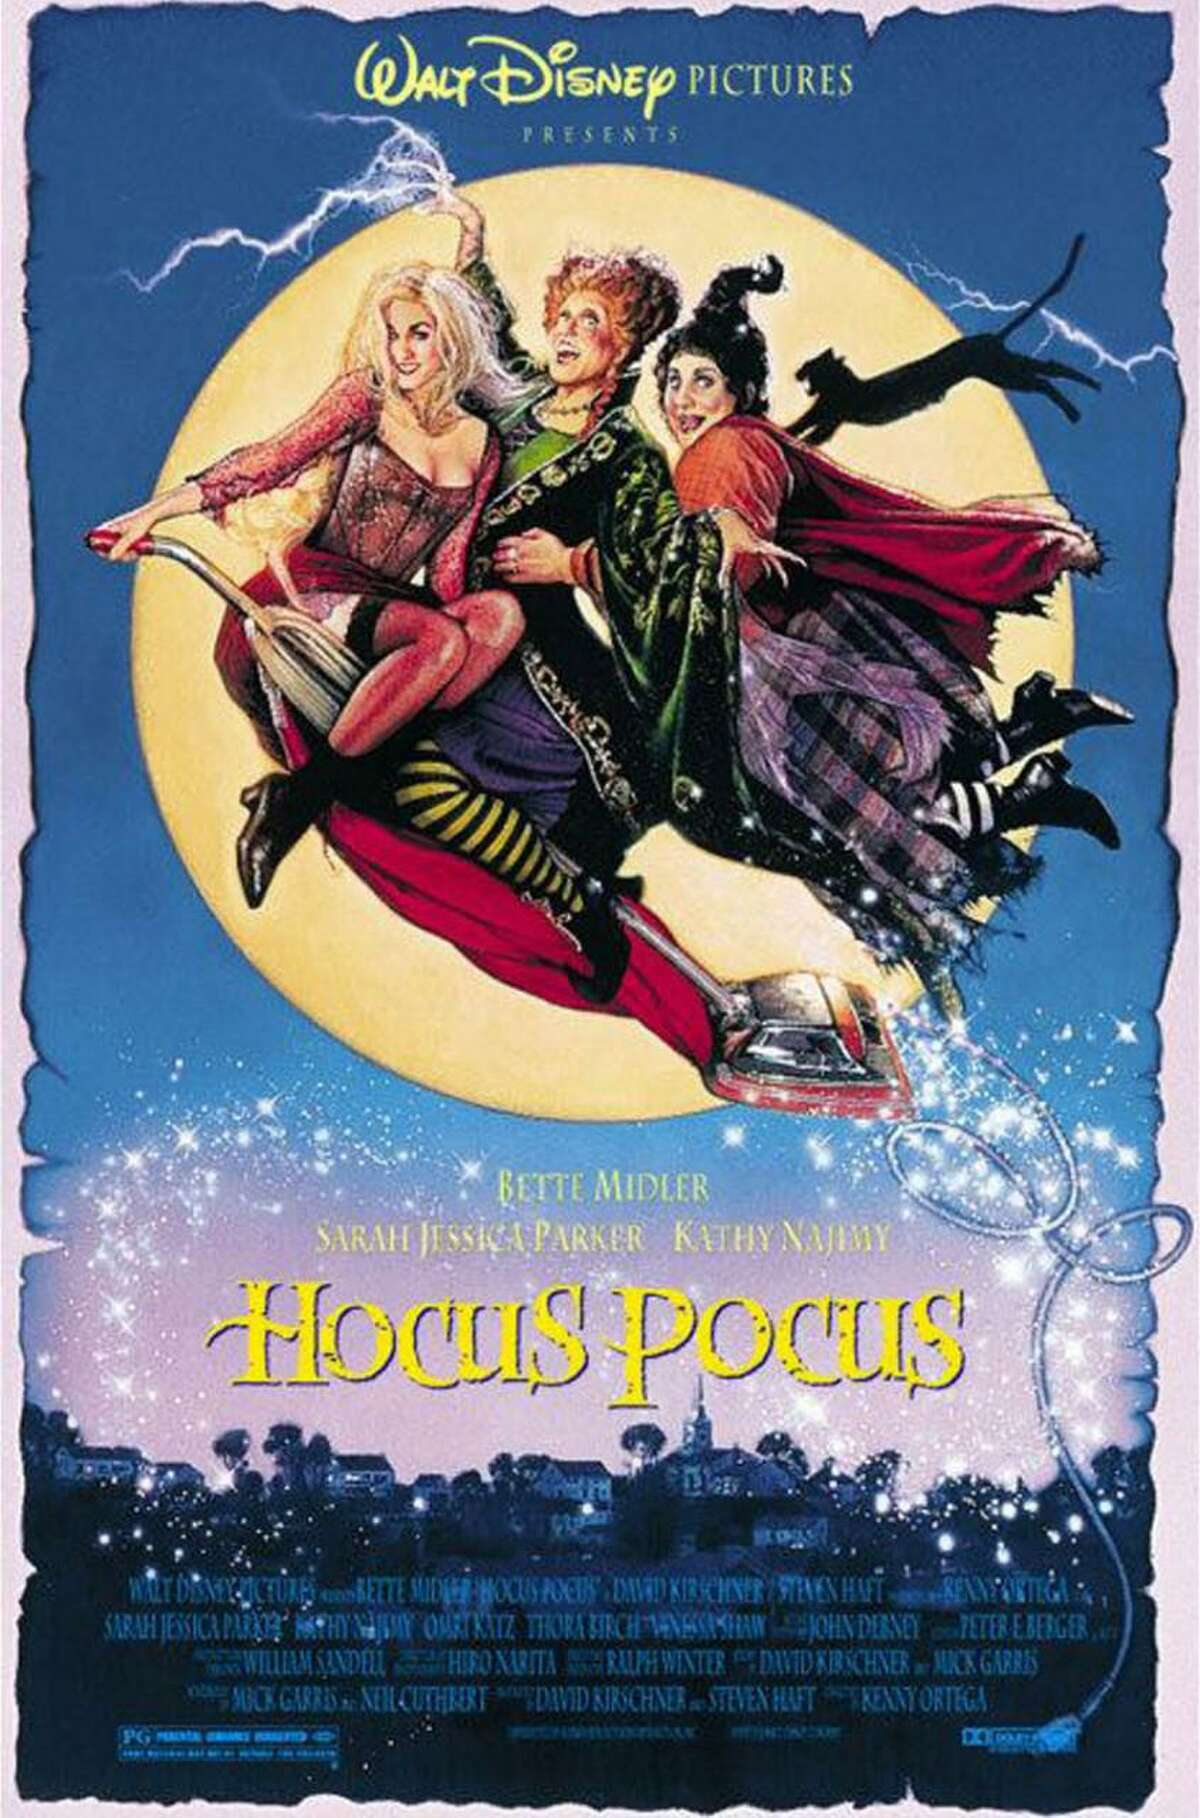 Shelton Youth Service Bureau is hosting a free outdoor movie night featuring Hocus Pocus next month.